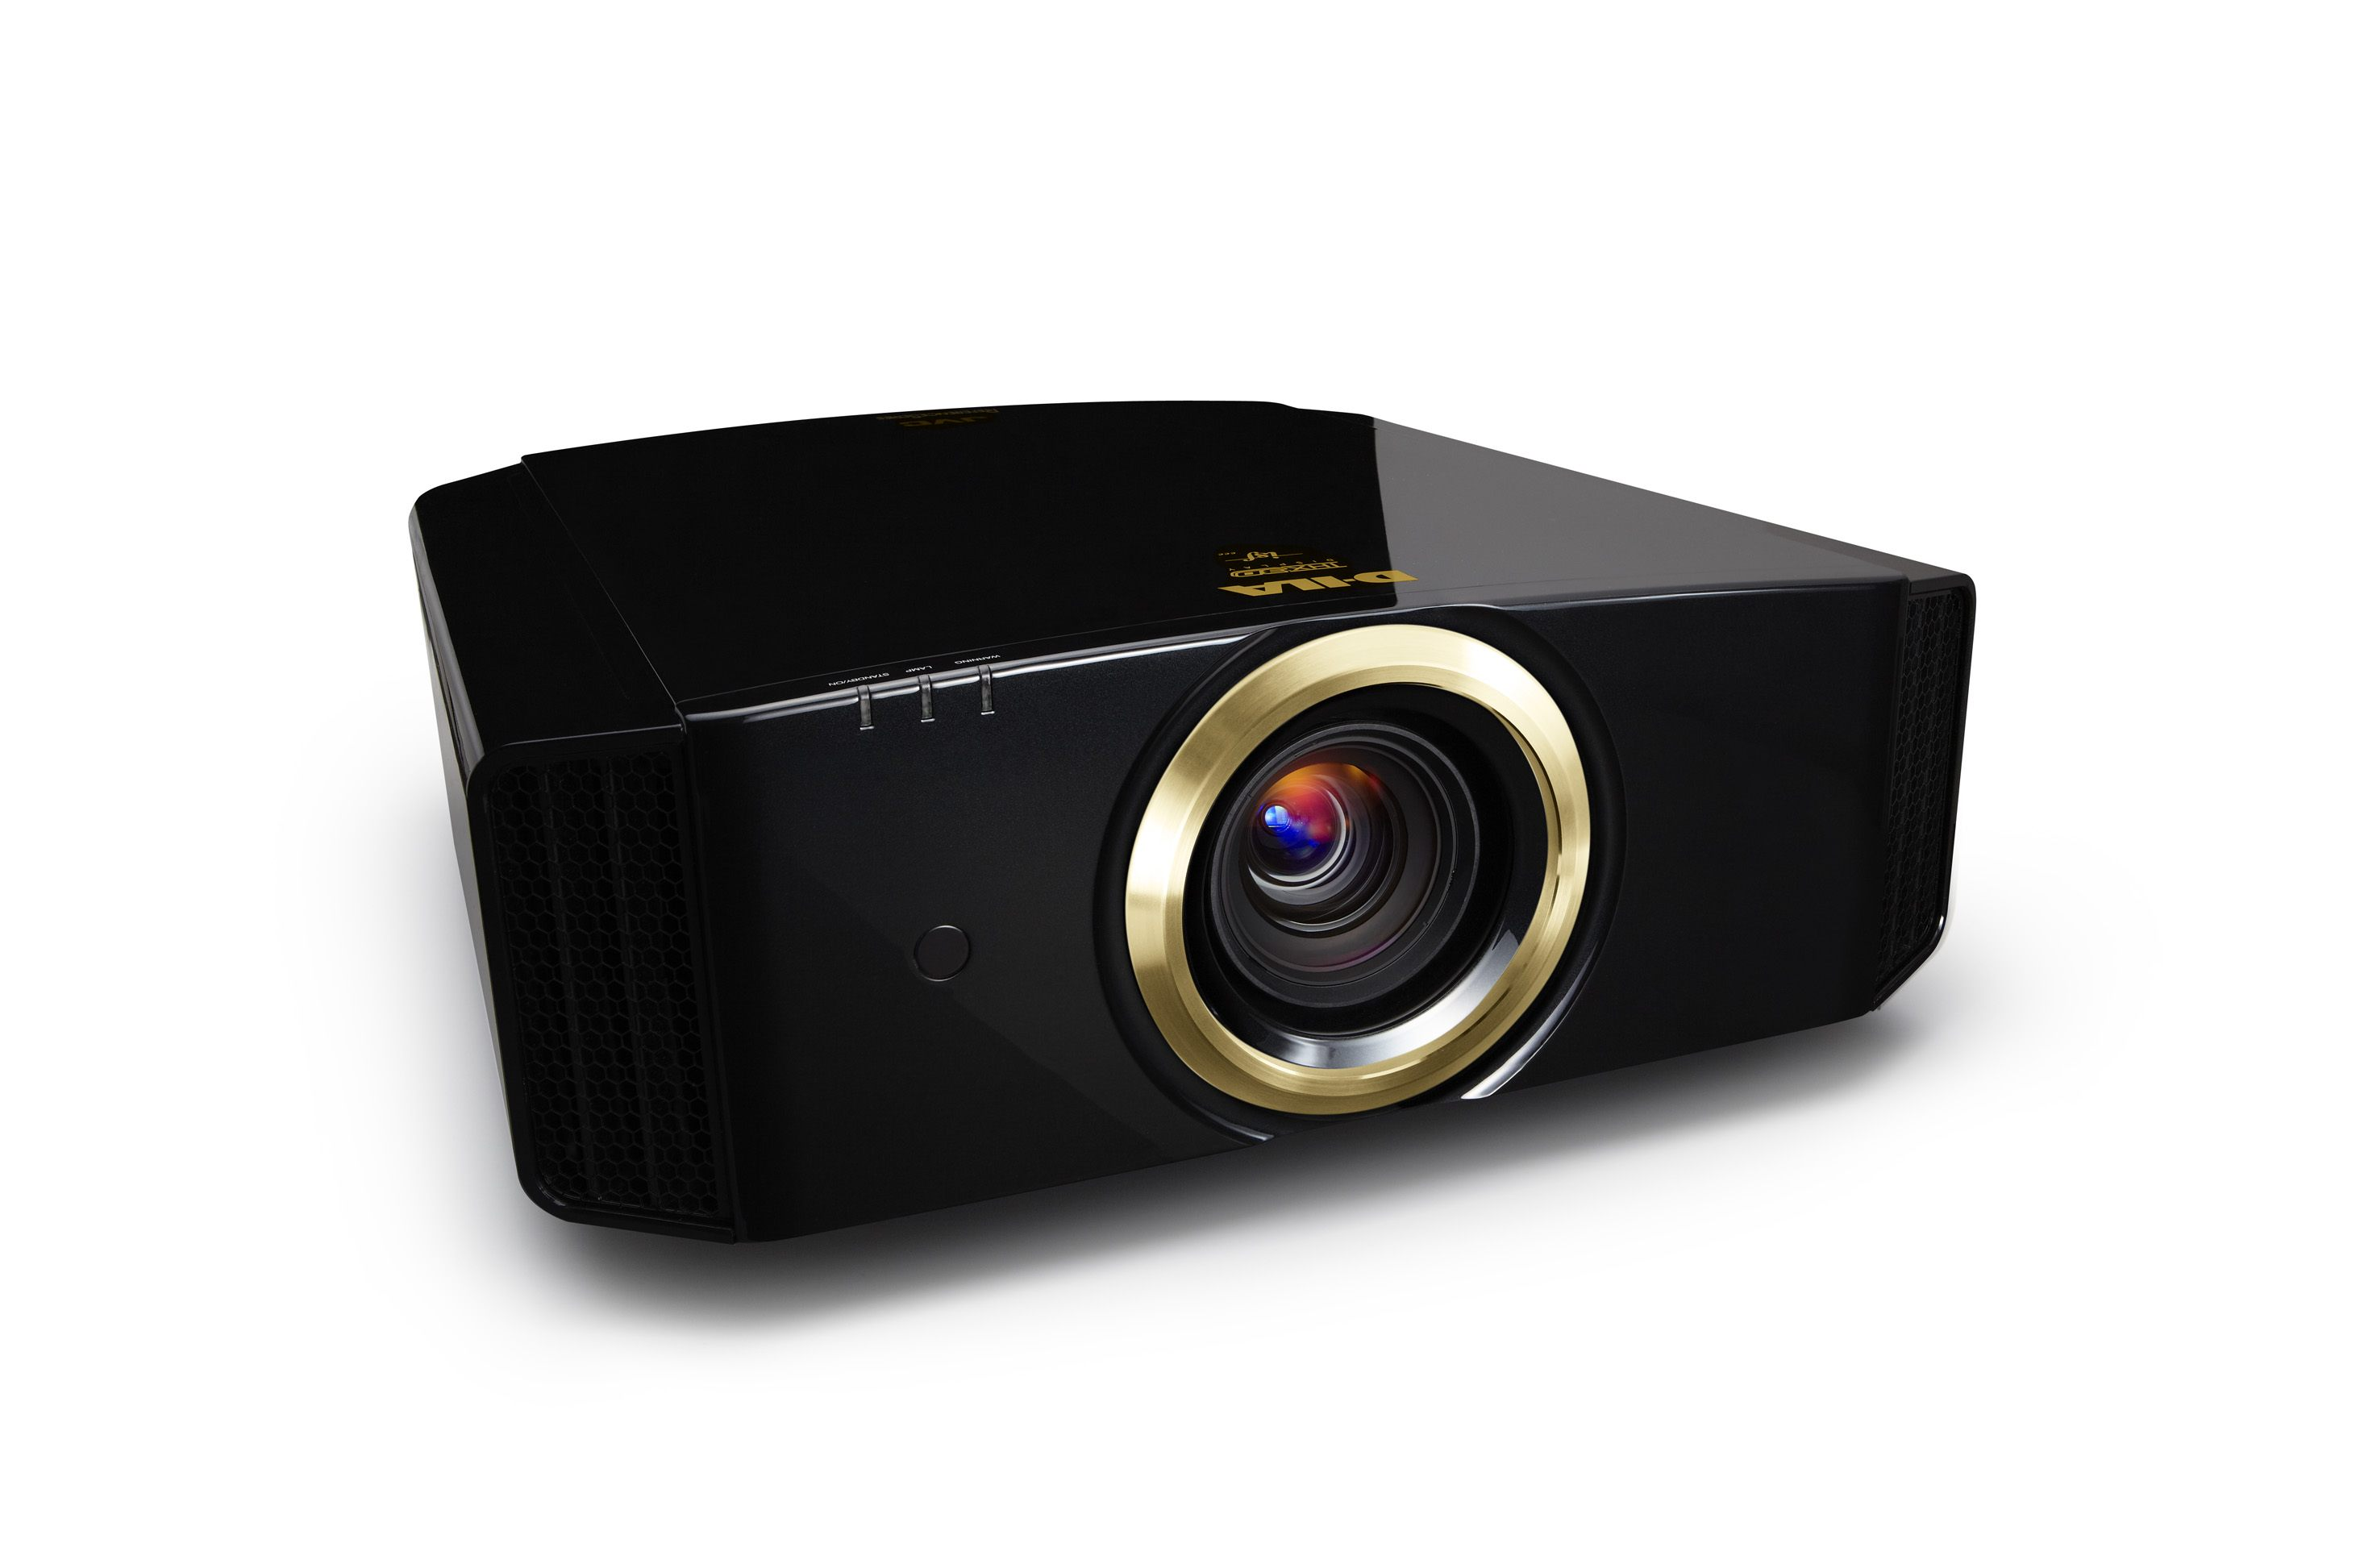 Choosing The Best Projectors Based On Usage